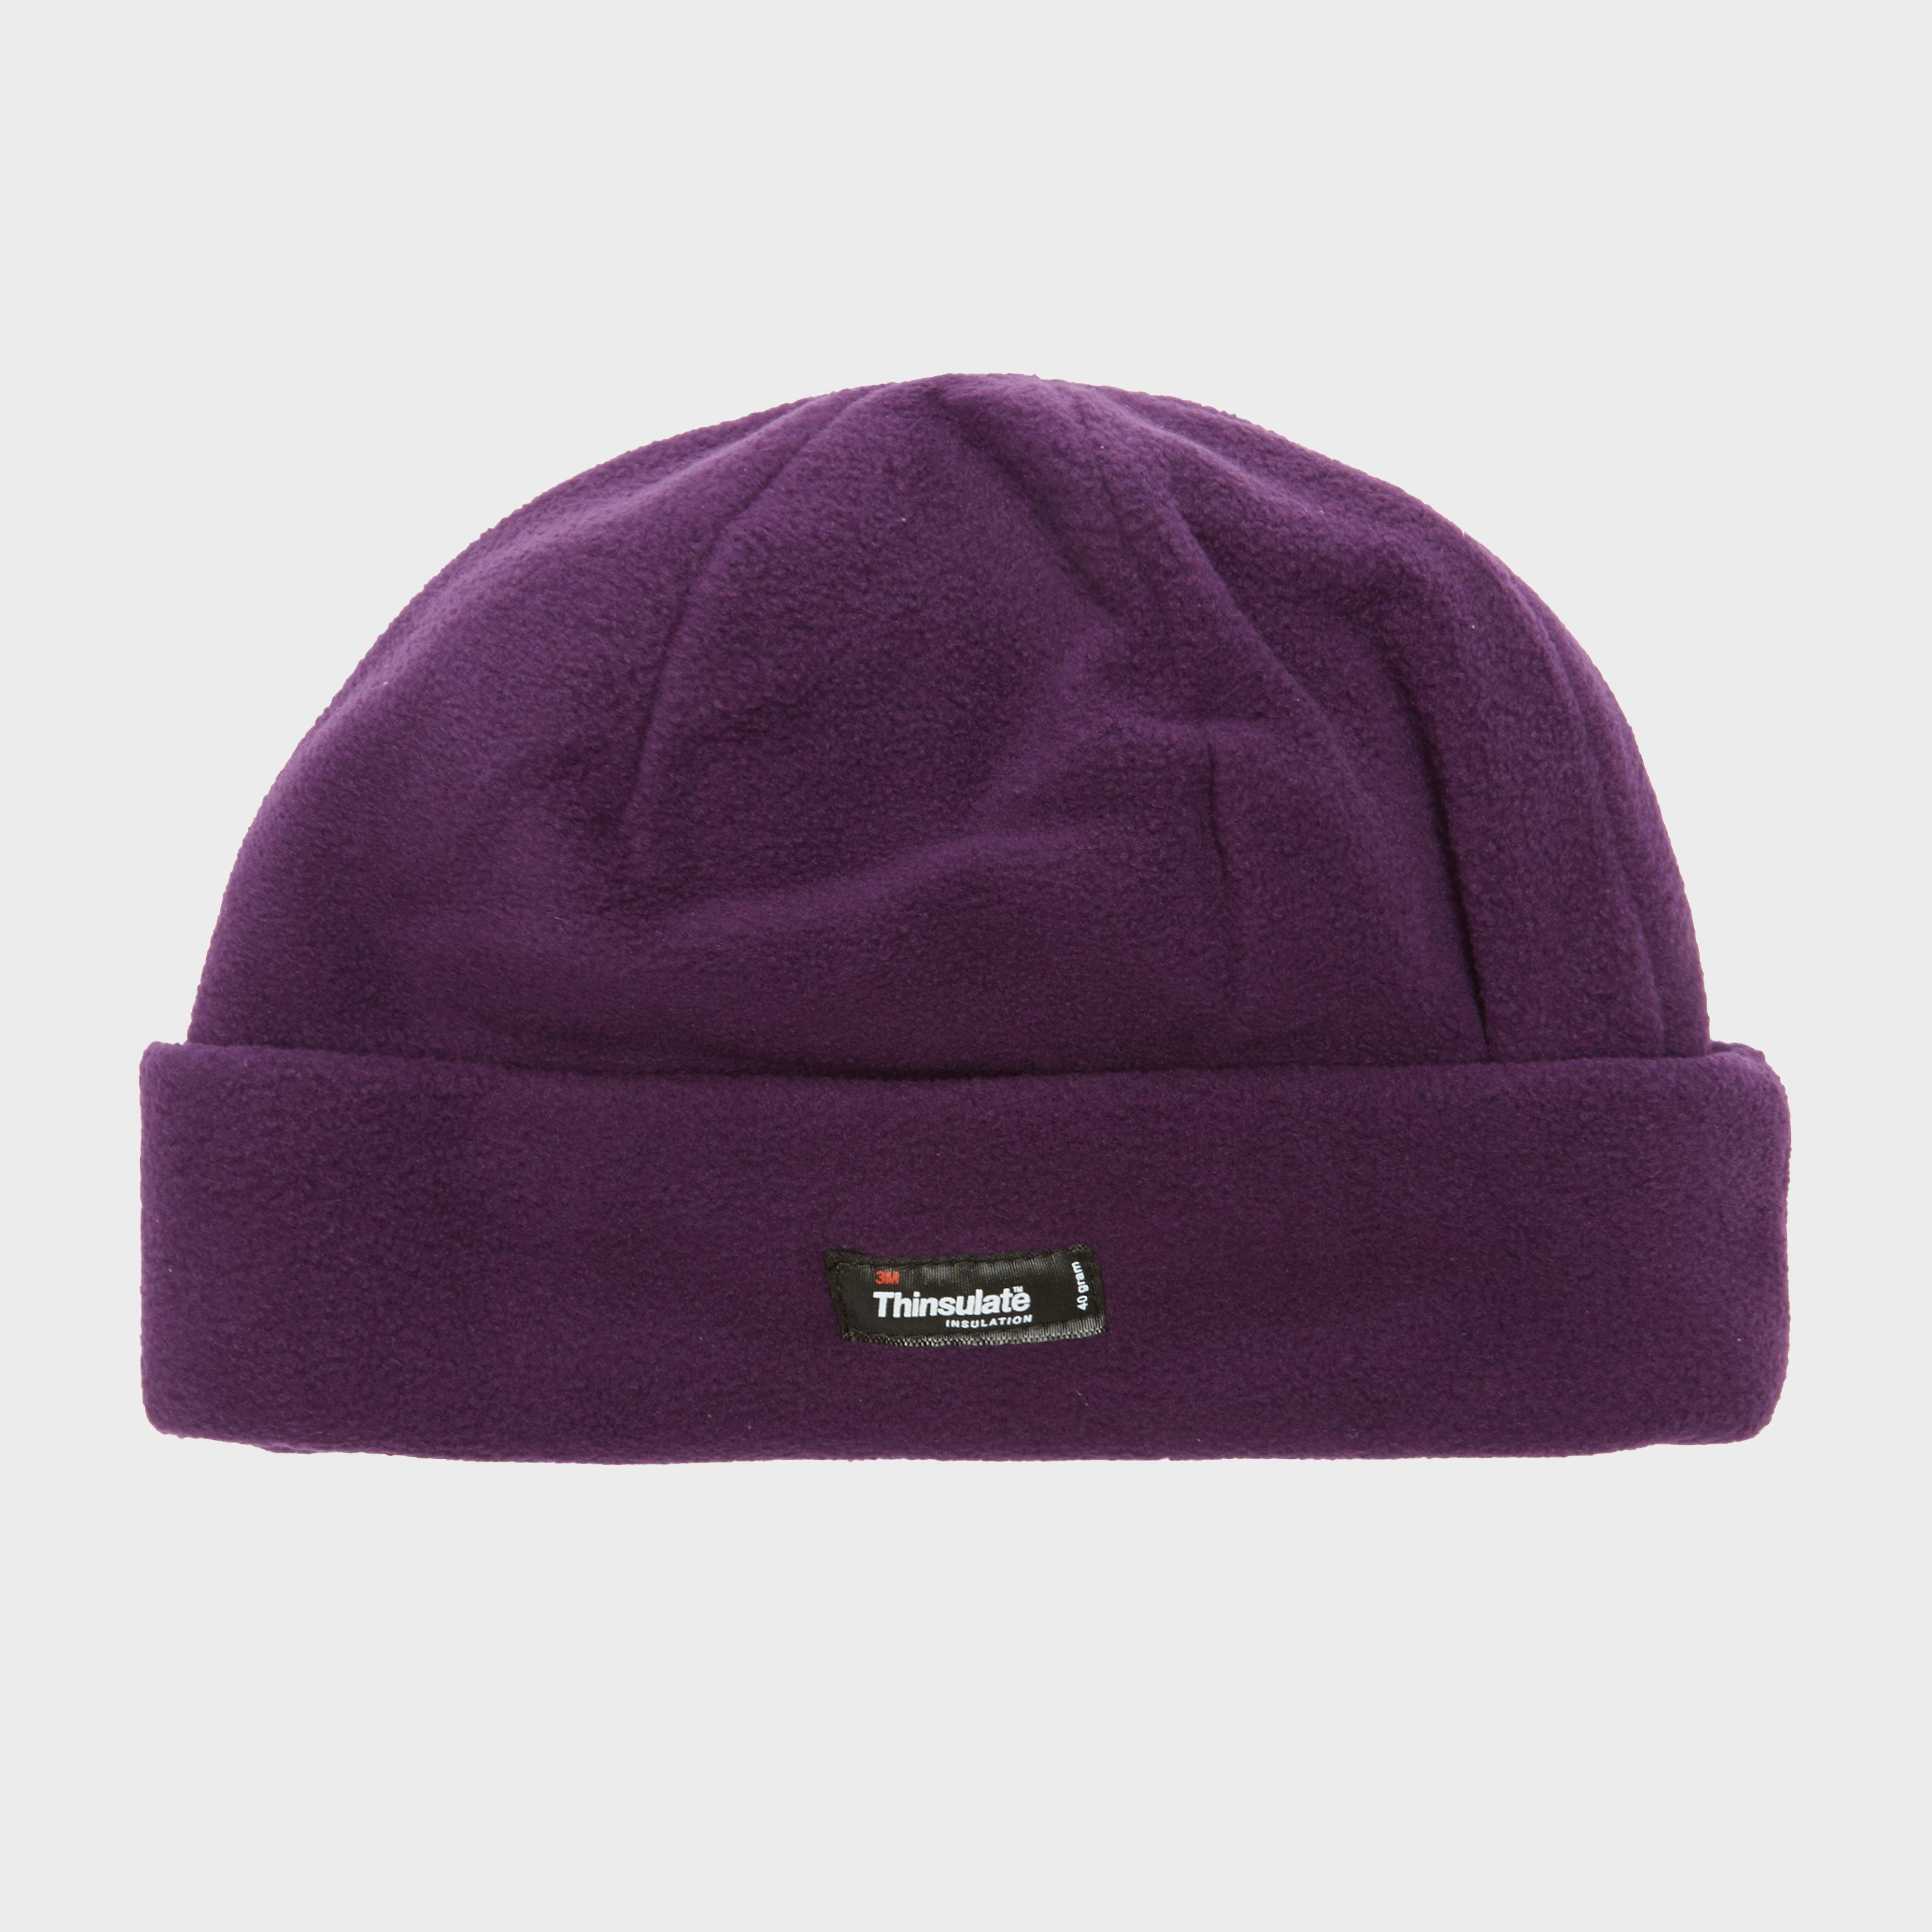 Bargain Peter Storm Thinsulate Fleece Beanie, Purple Stockists